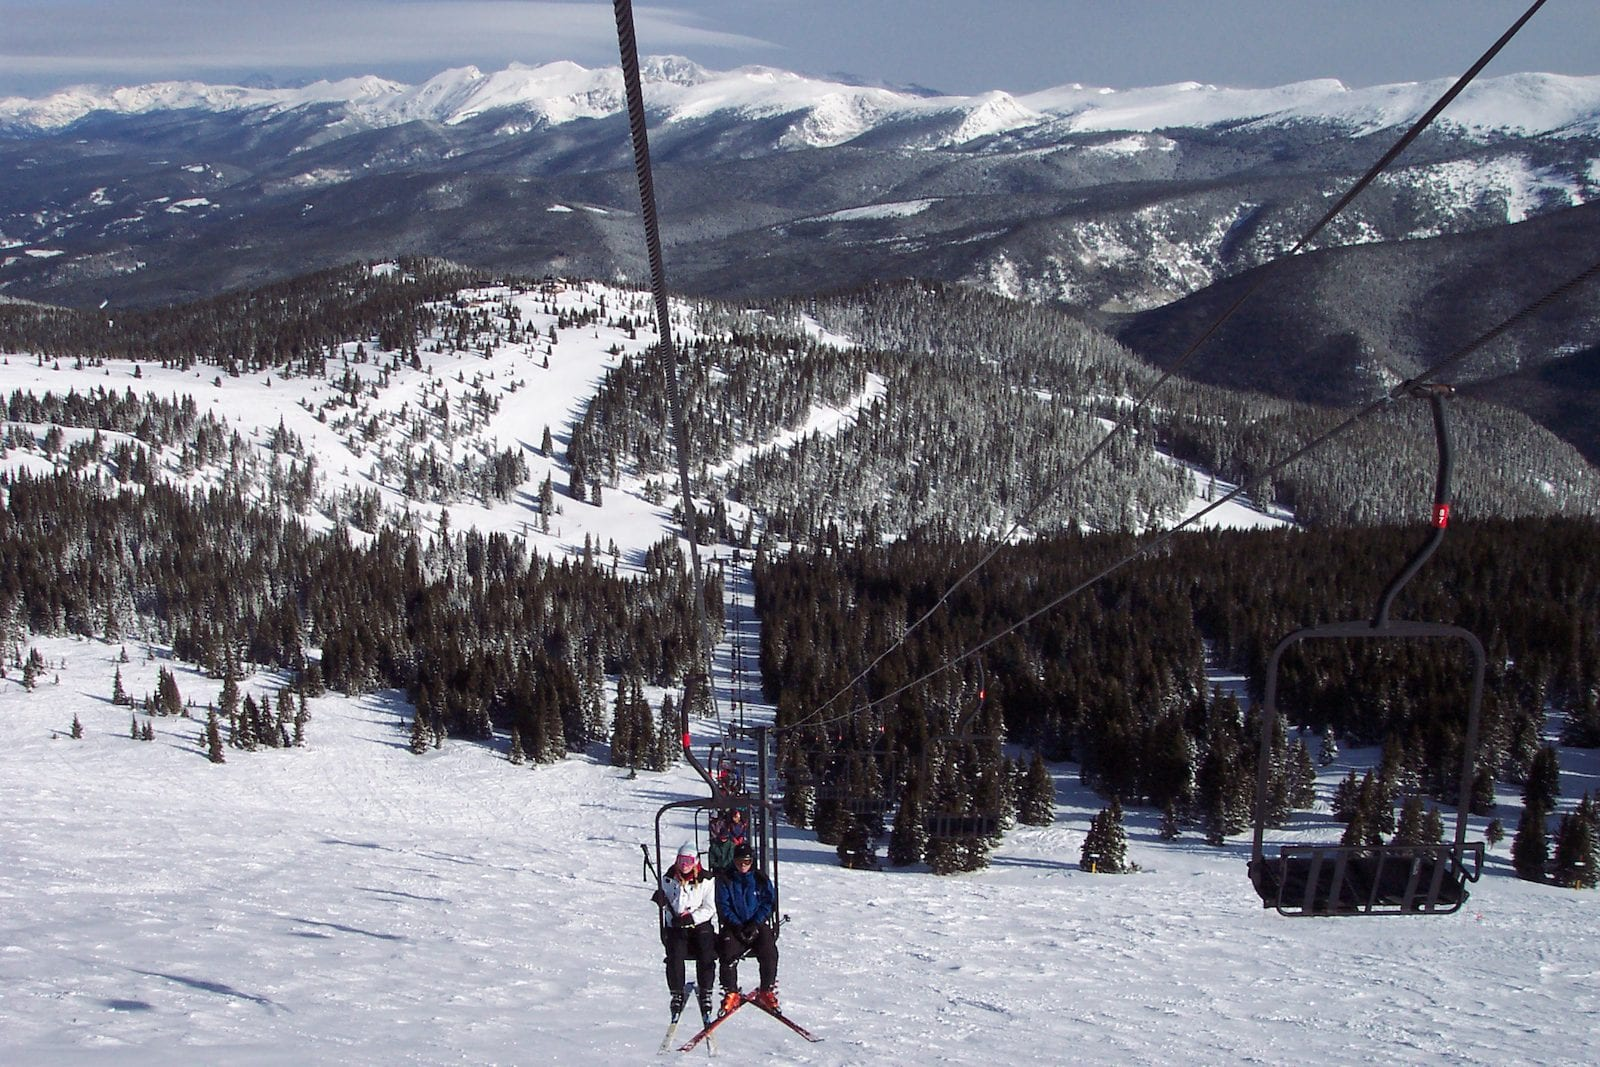 Top of Winter Park, Colorado